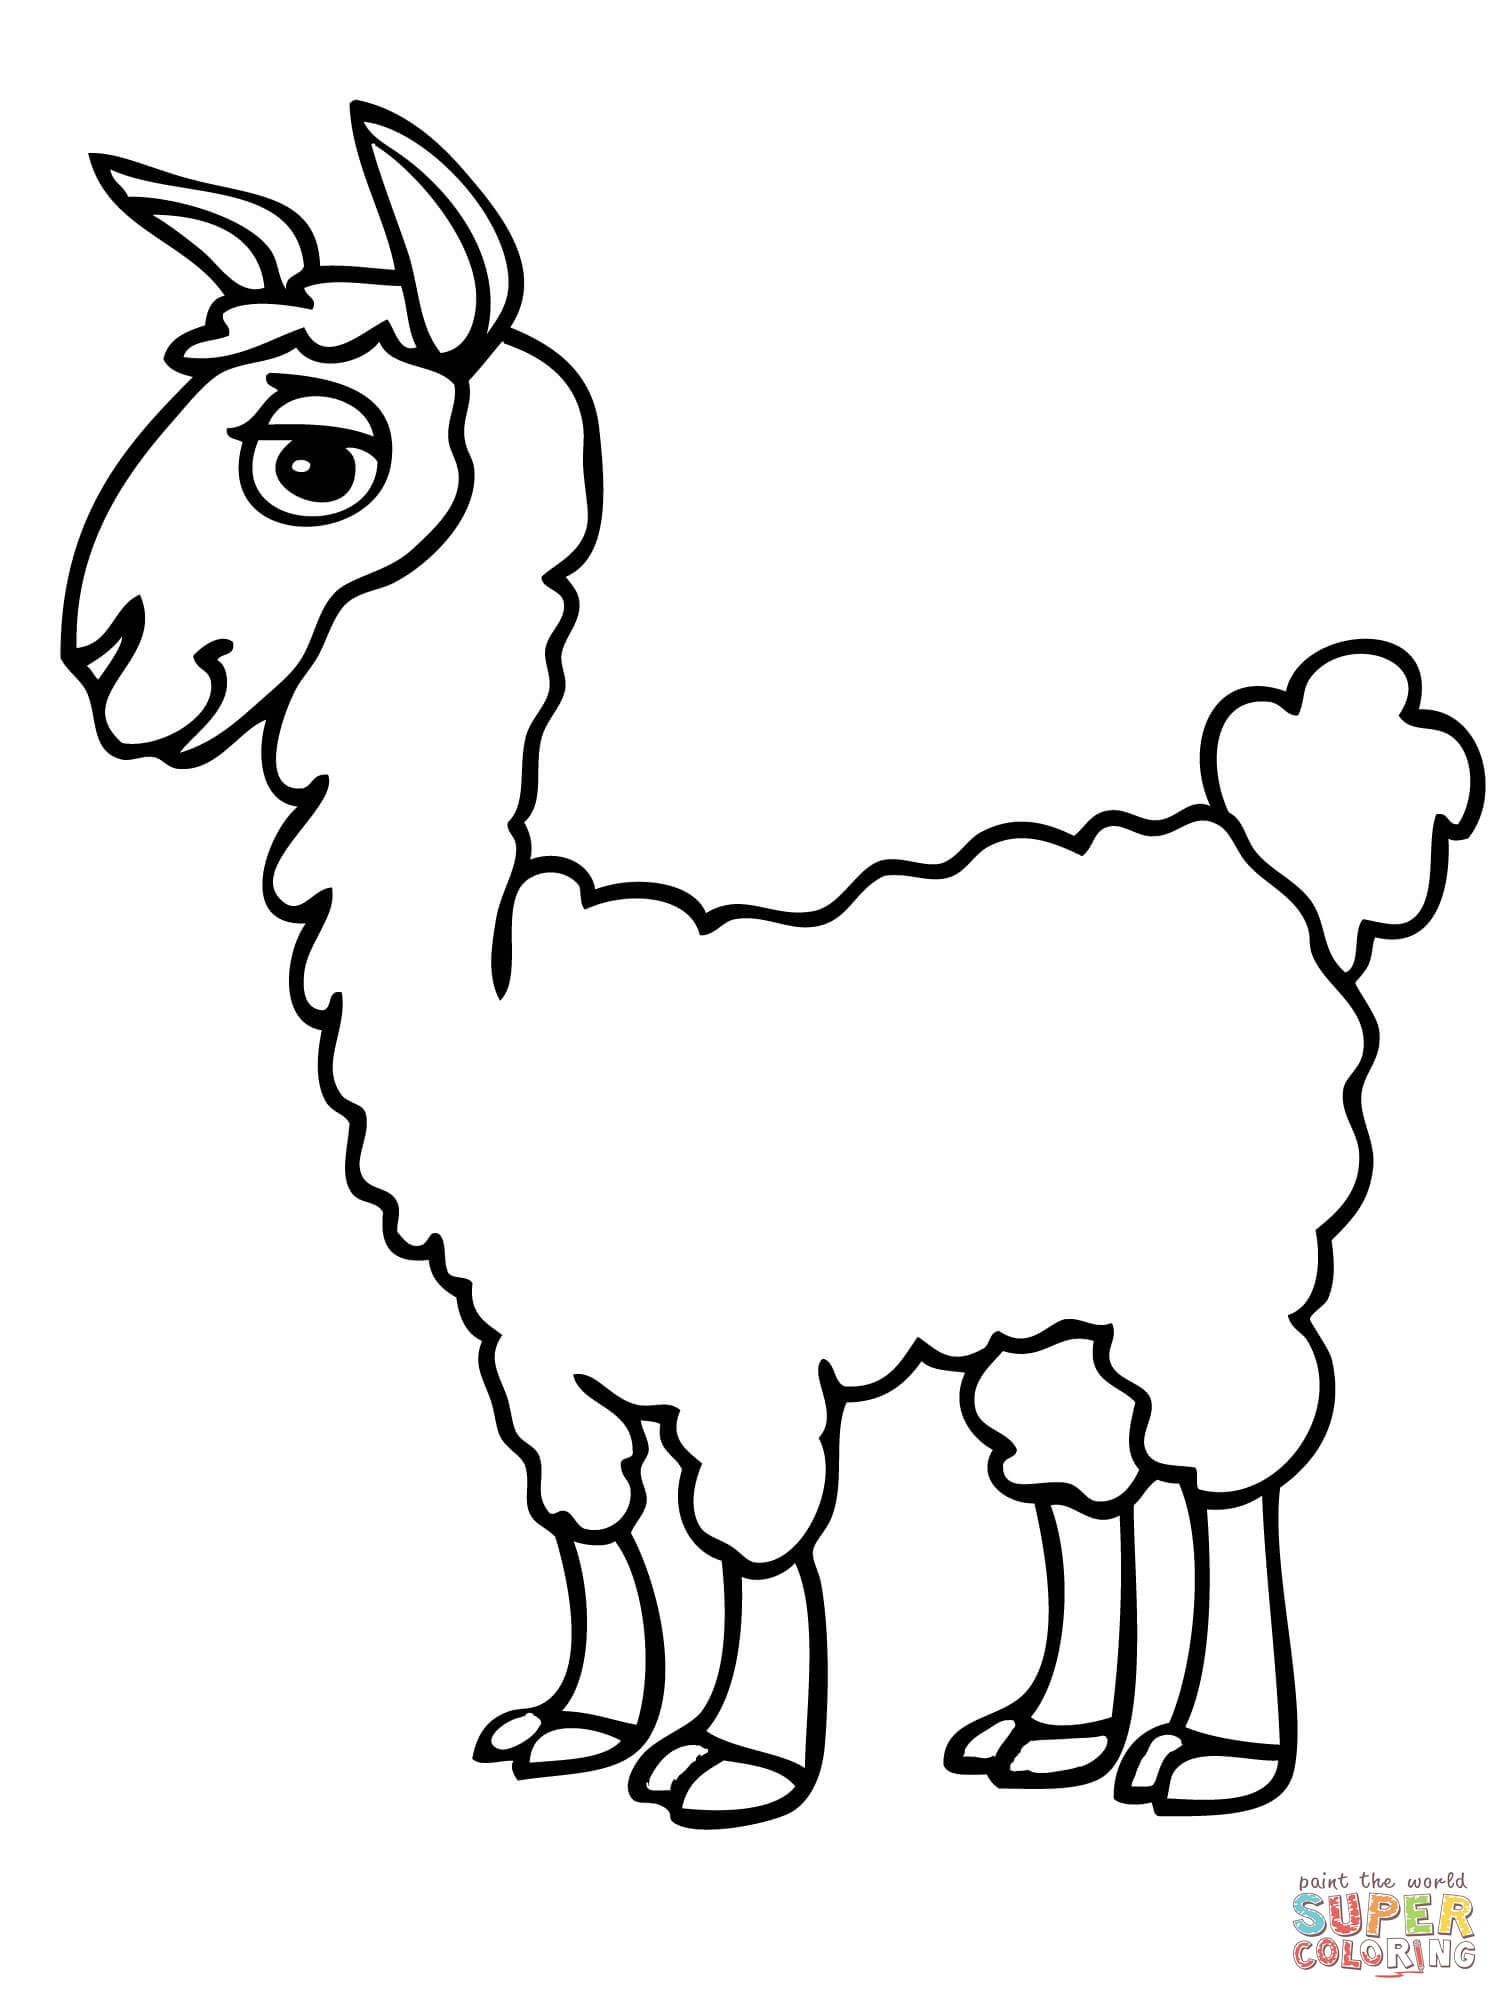 Cute Alpaca coloring page | Free Printable Coloring Pages | llama ...